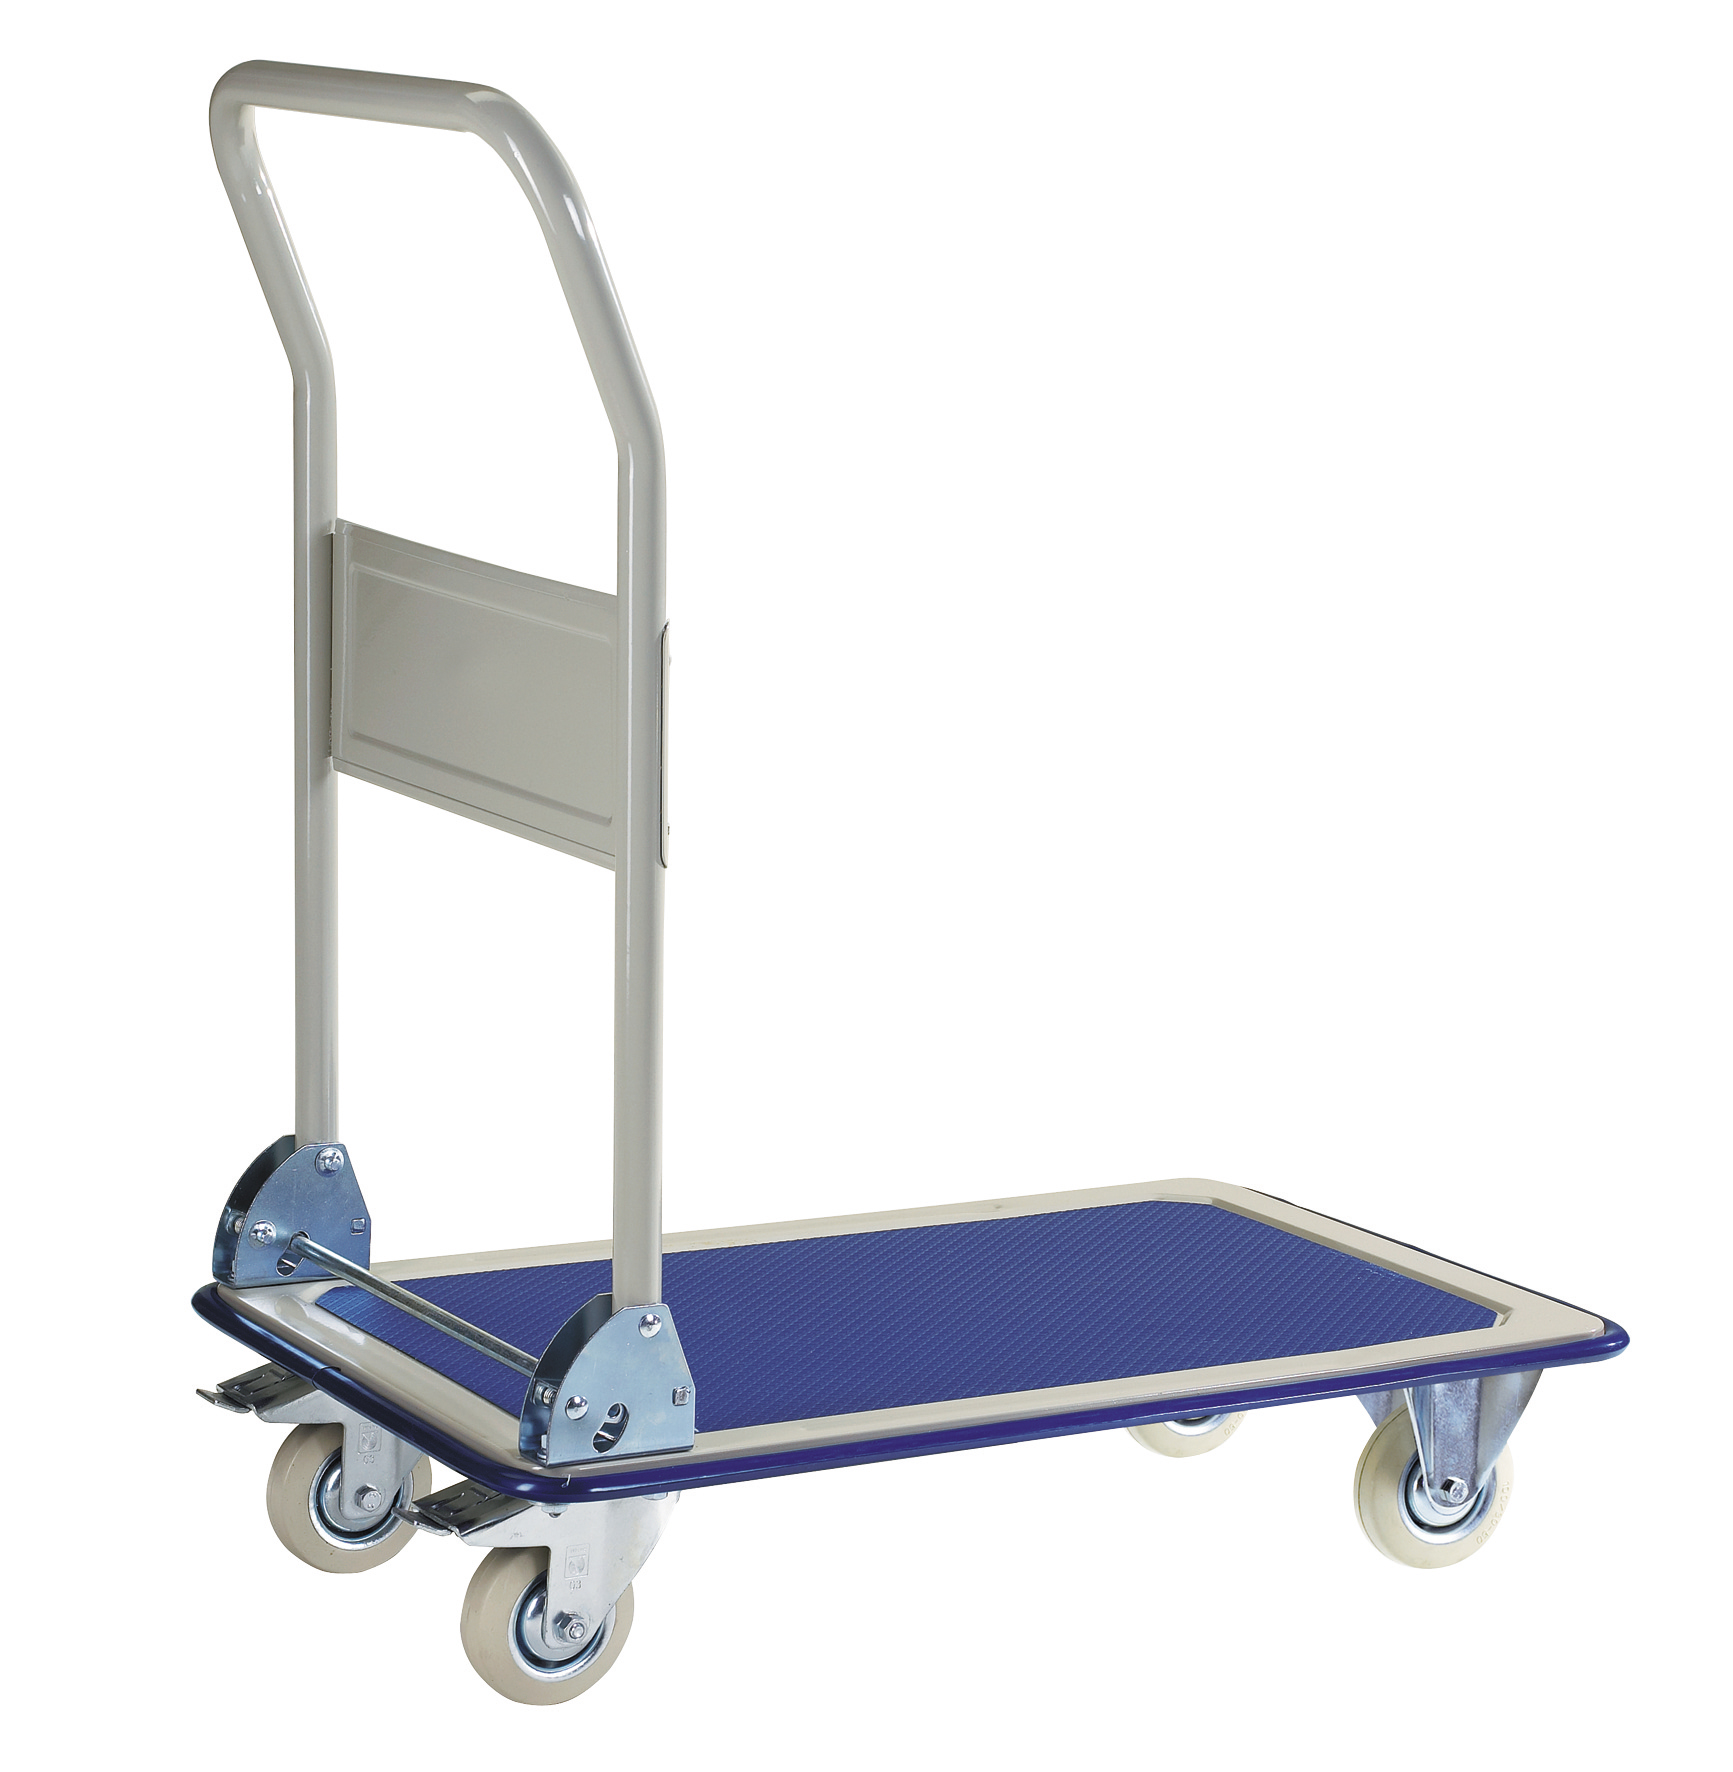 Foldable pushbar platform trolley